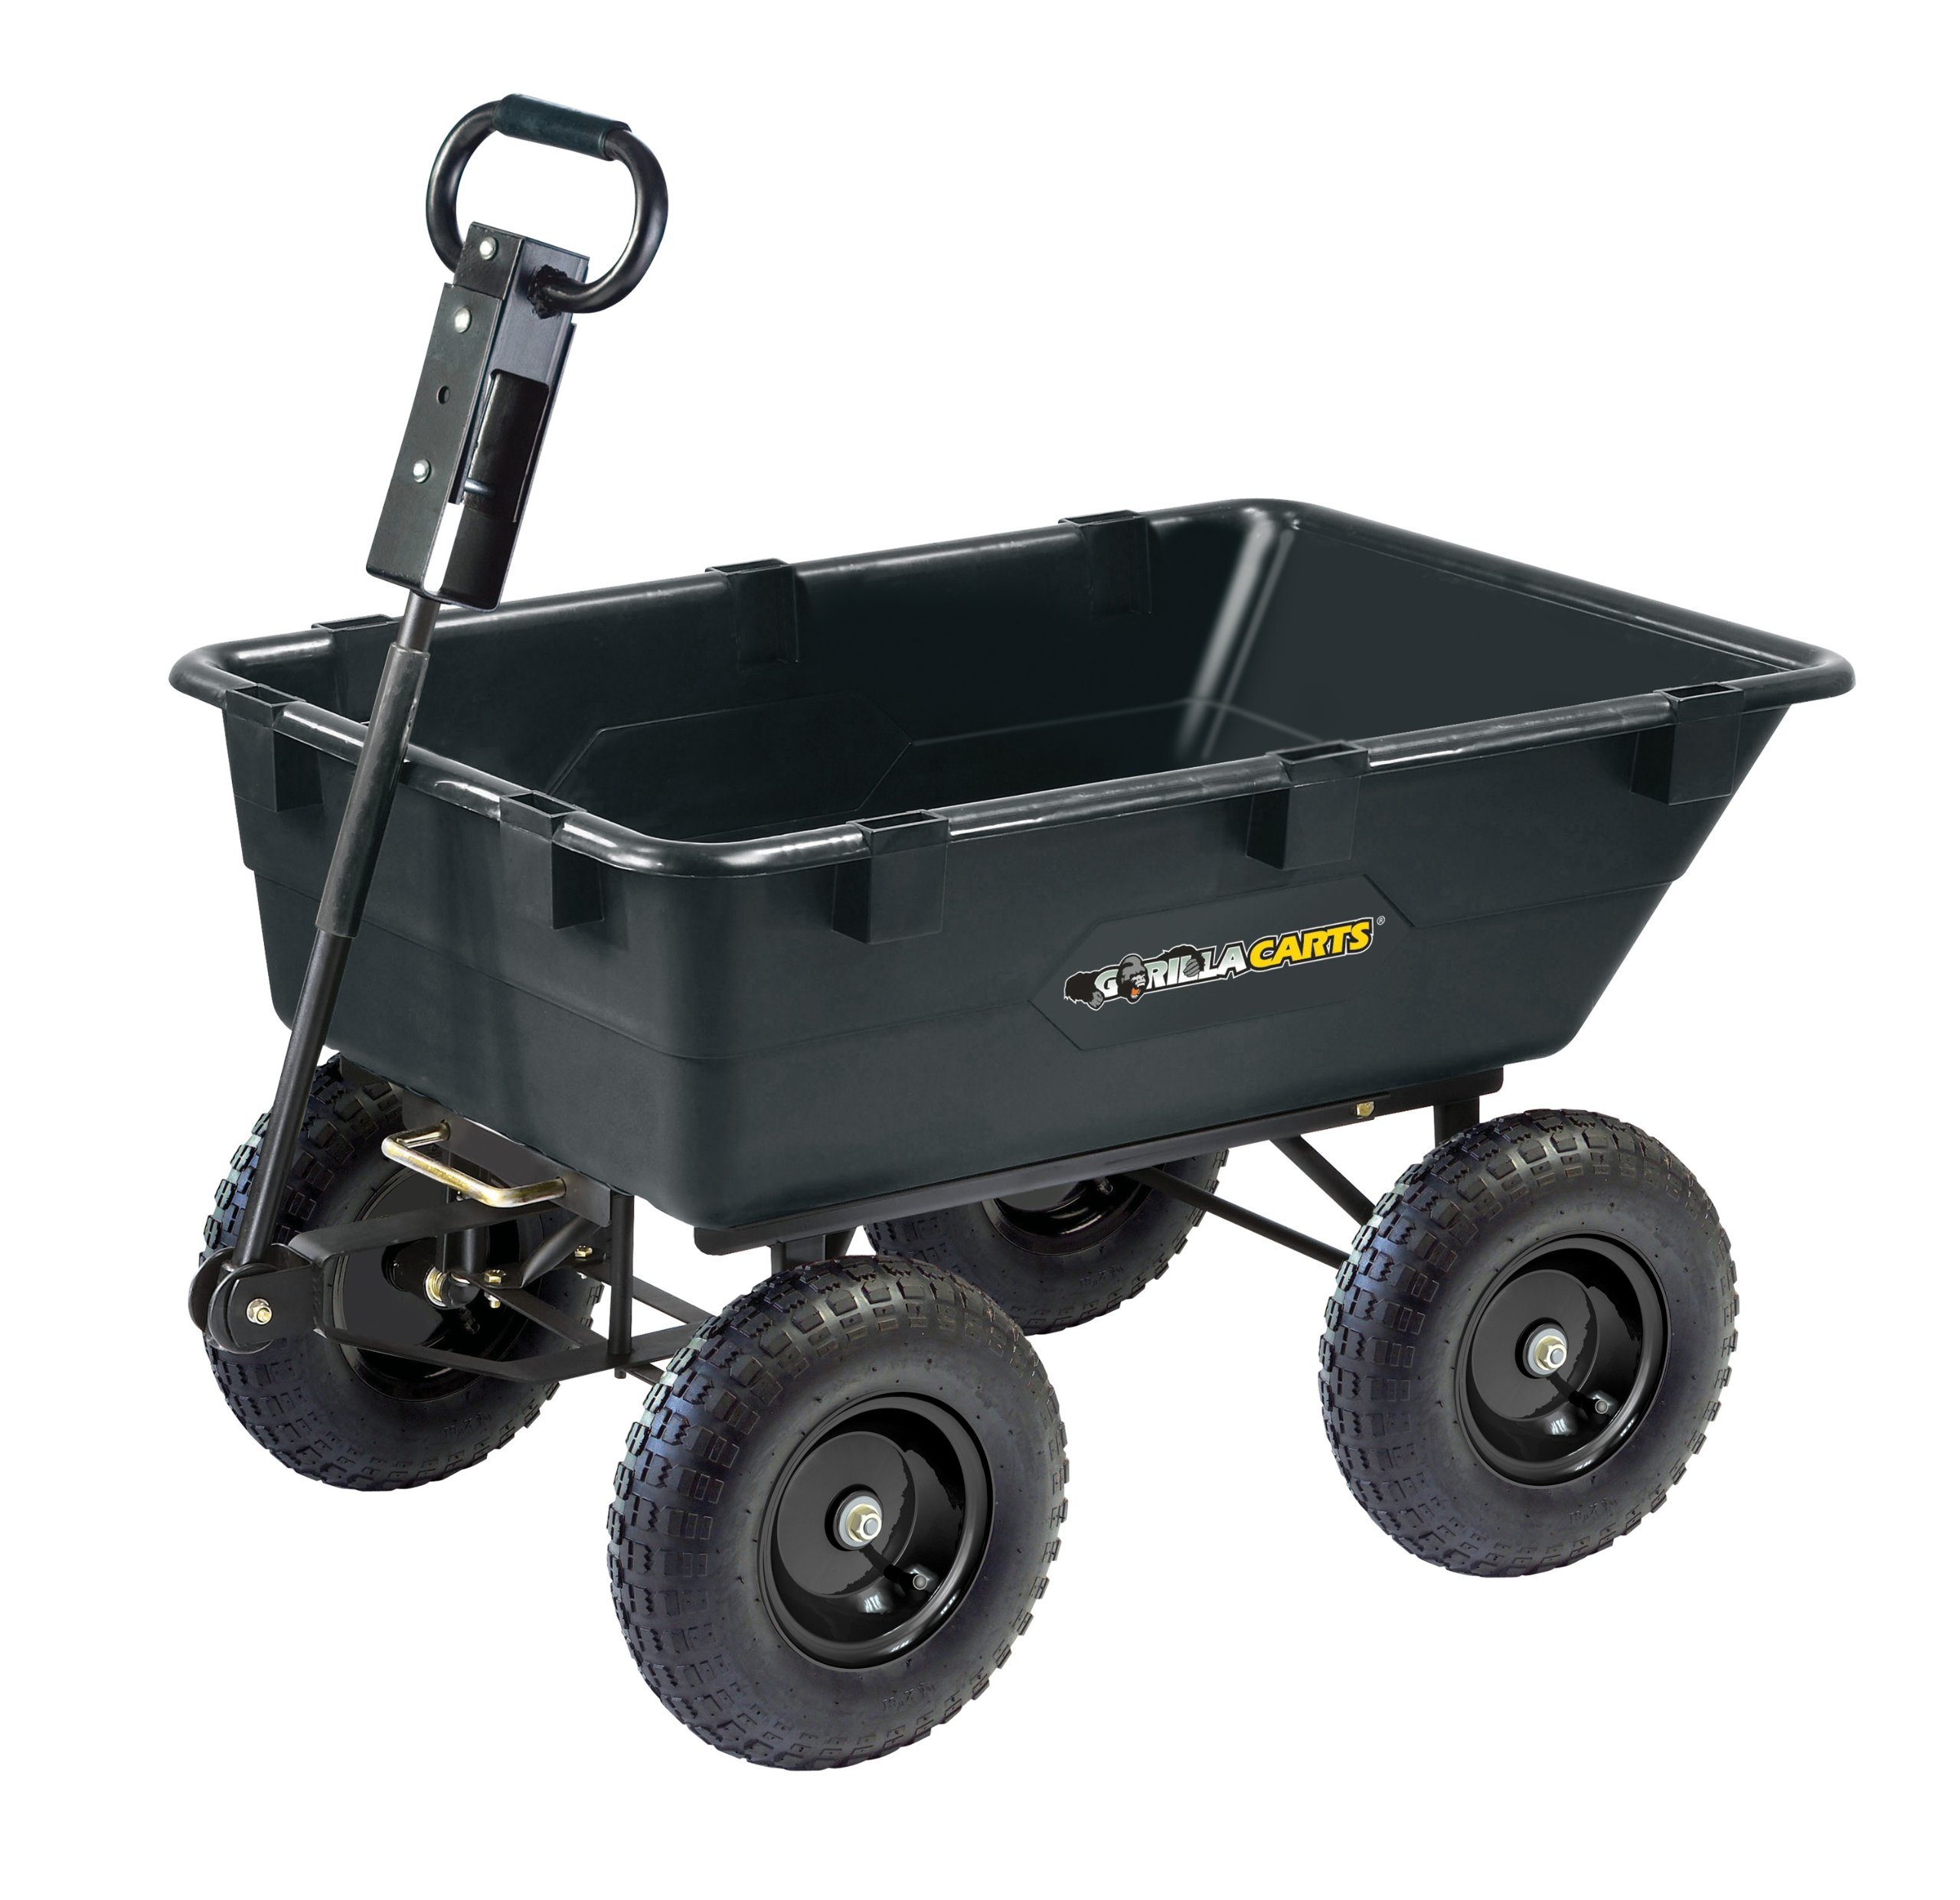 Gorilla Carts GOR866D Heavy-Duty Garden Poly Dump Cart with 2-In-1 Convertible Handle, 1,200-Pound Capacity, 40-Inch by 25-Inch Bed, Black Finish by Gorilla Carts